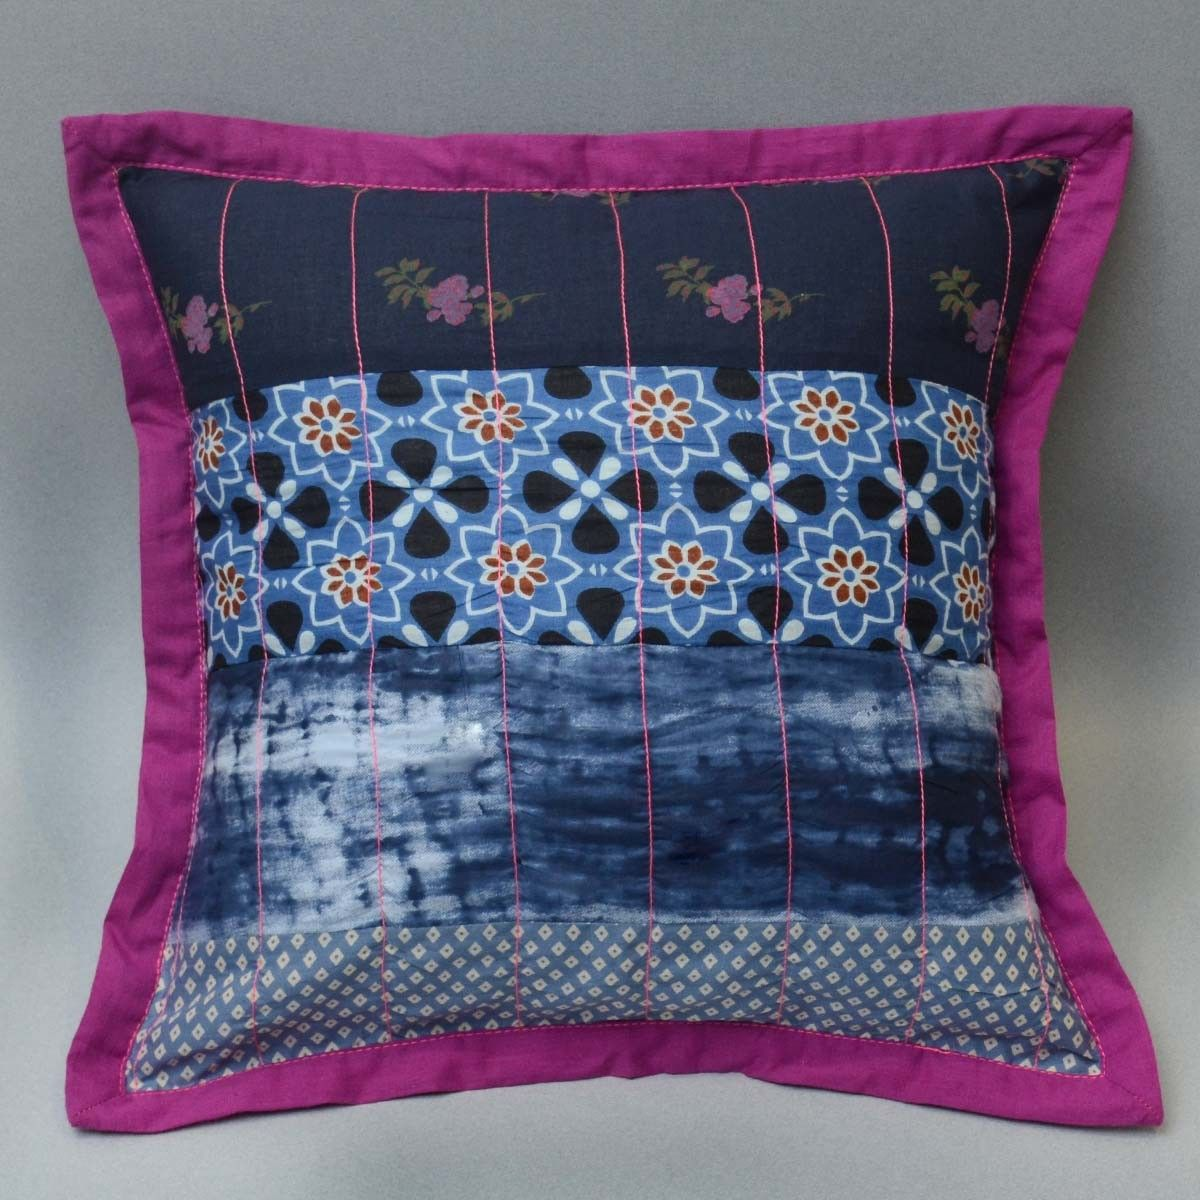 Cotton Patch Work Cushion Cover, Indigo Color - 16 x 16 Inch